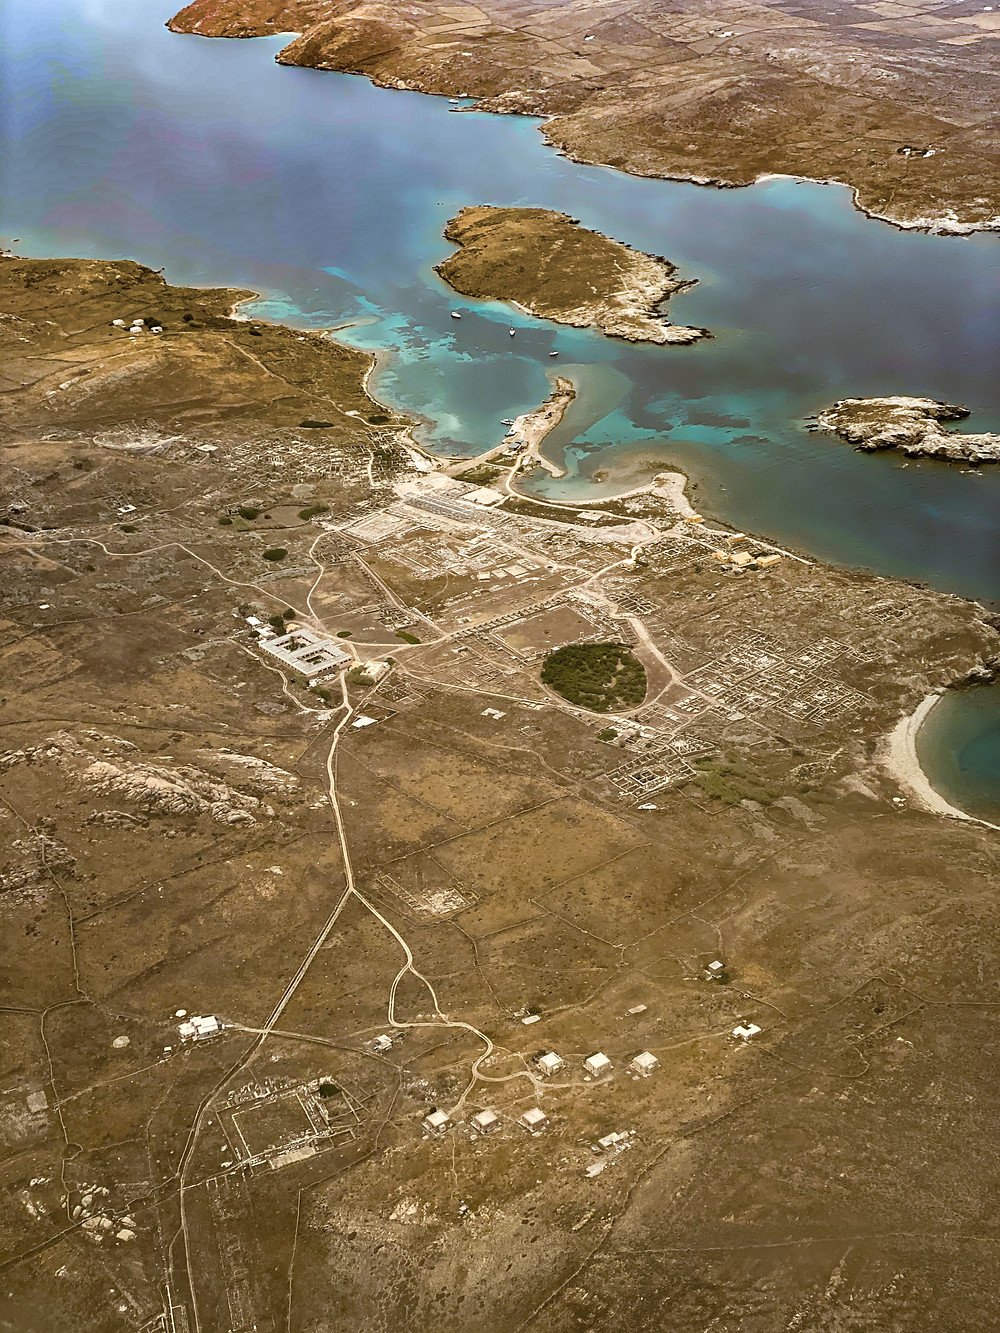 View of the ruins at Delos from the airplane.